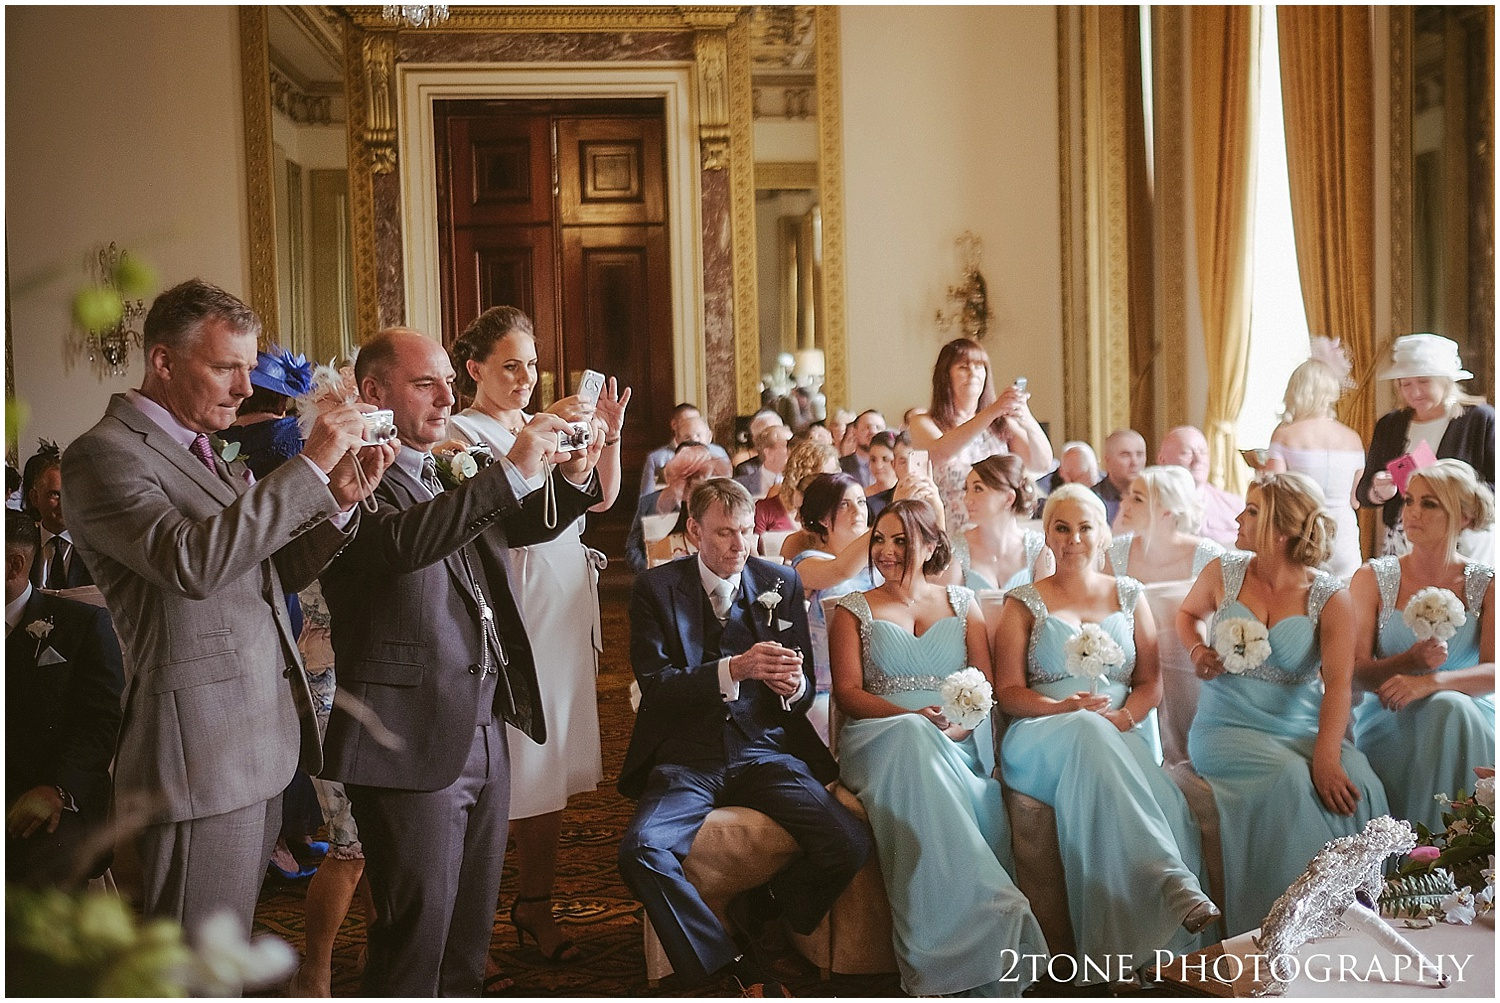 Wynyard Hall wedding by www.2tonephotography.co.uk 049.jpg